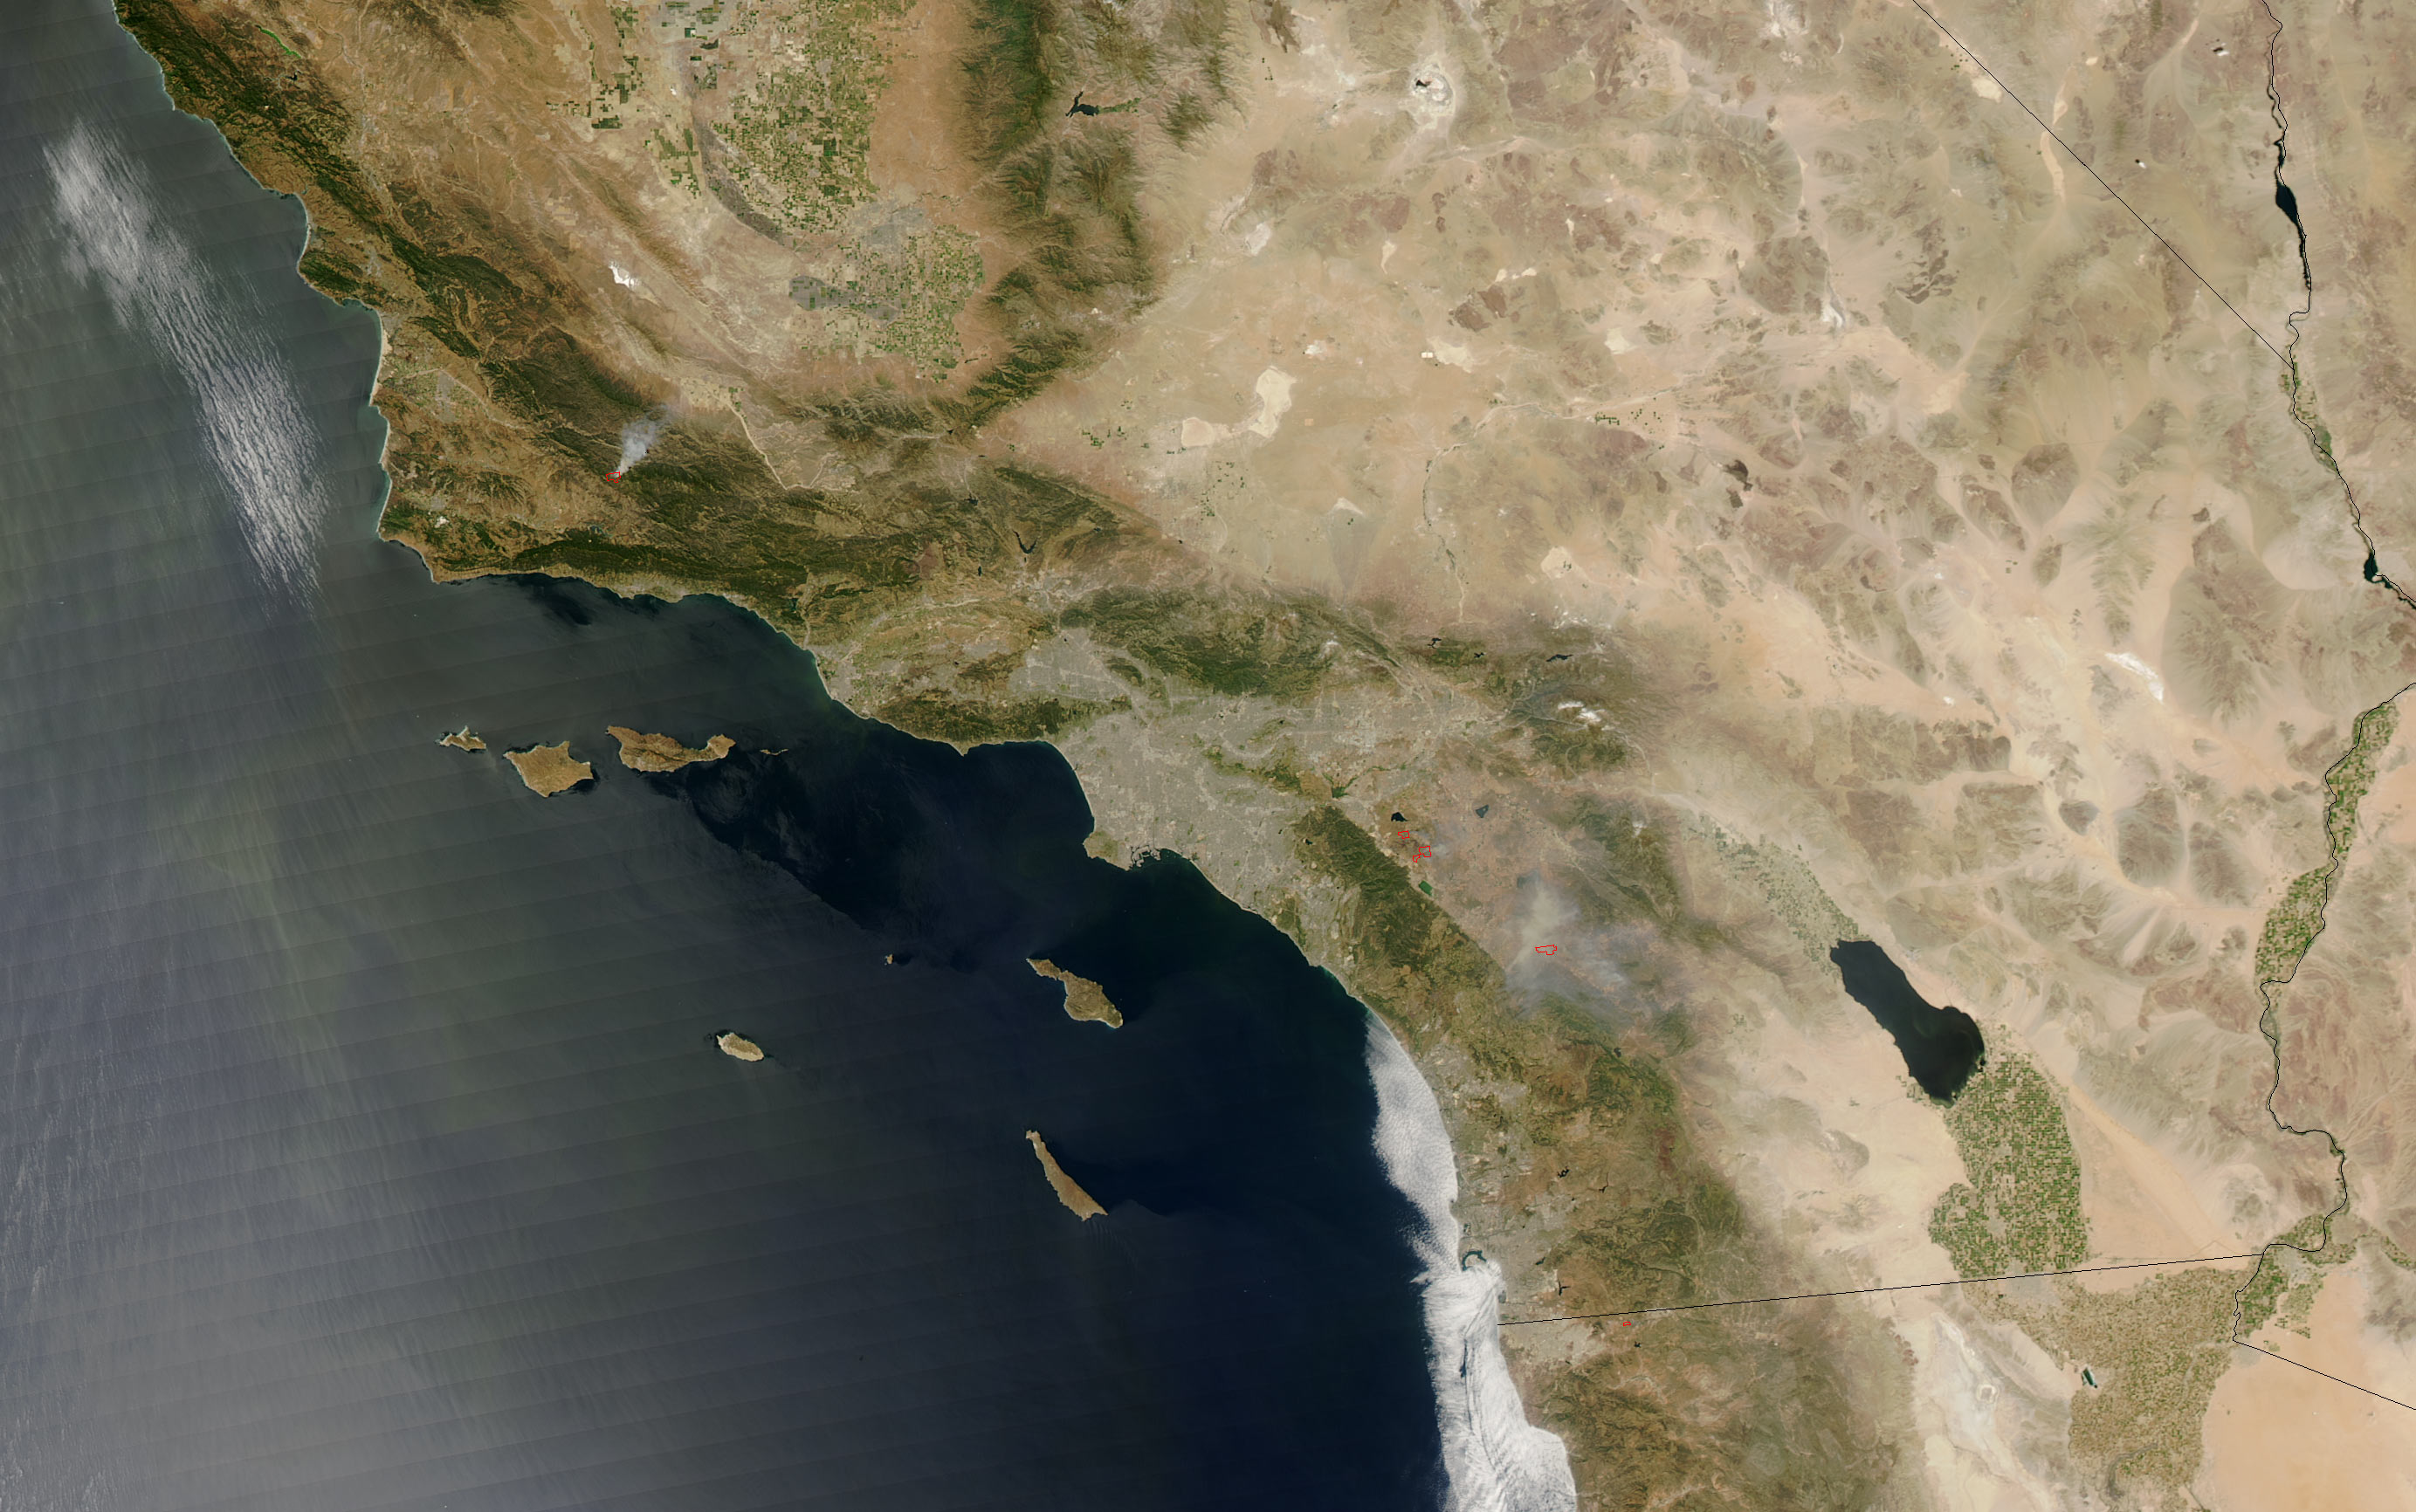 Fires Southeast of Los Angeles California  Natural Hazards